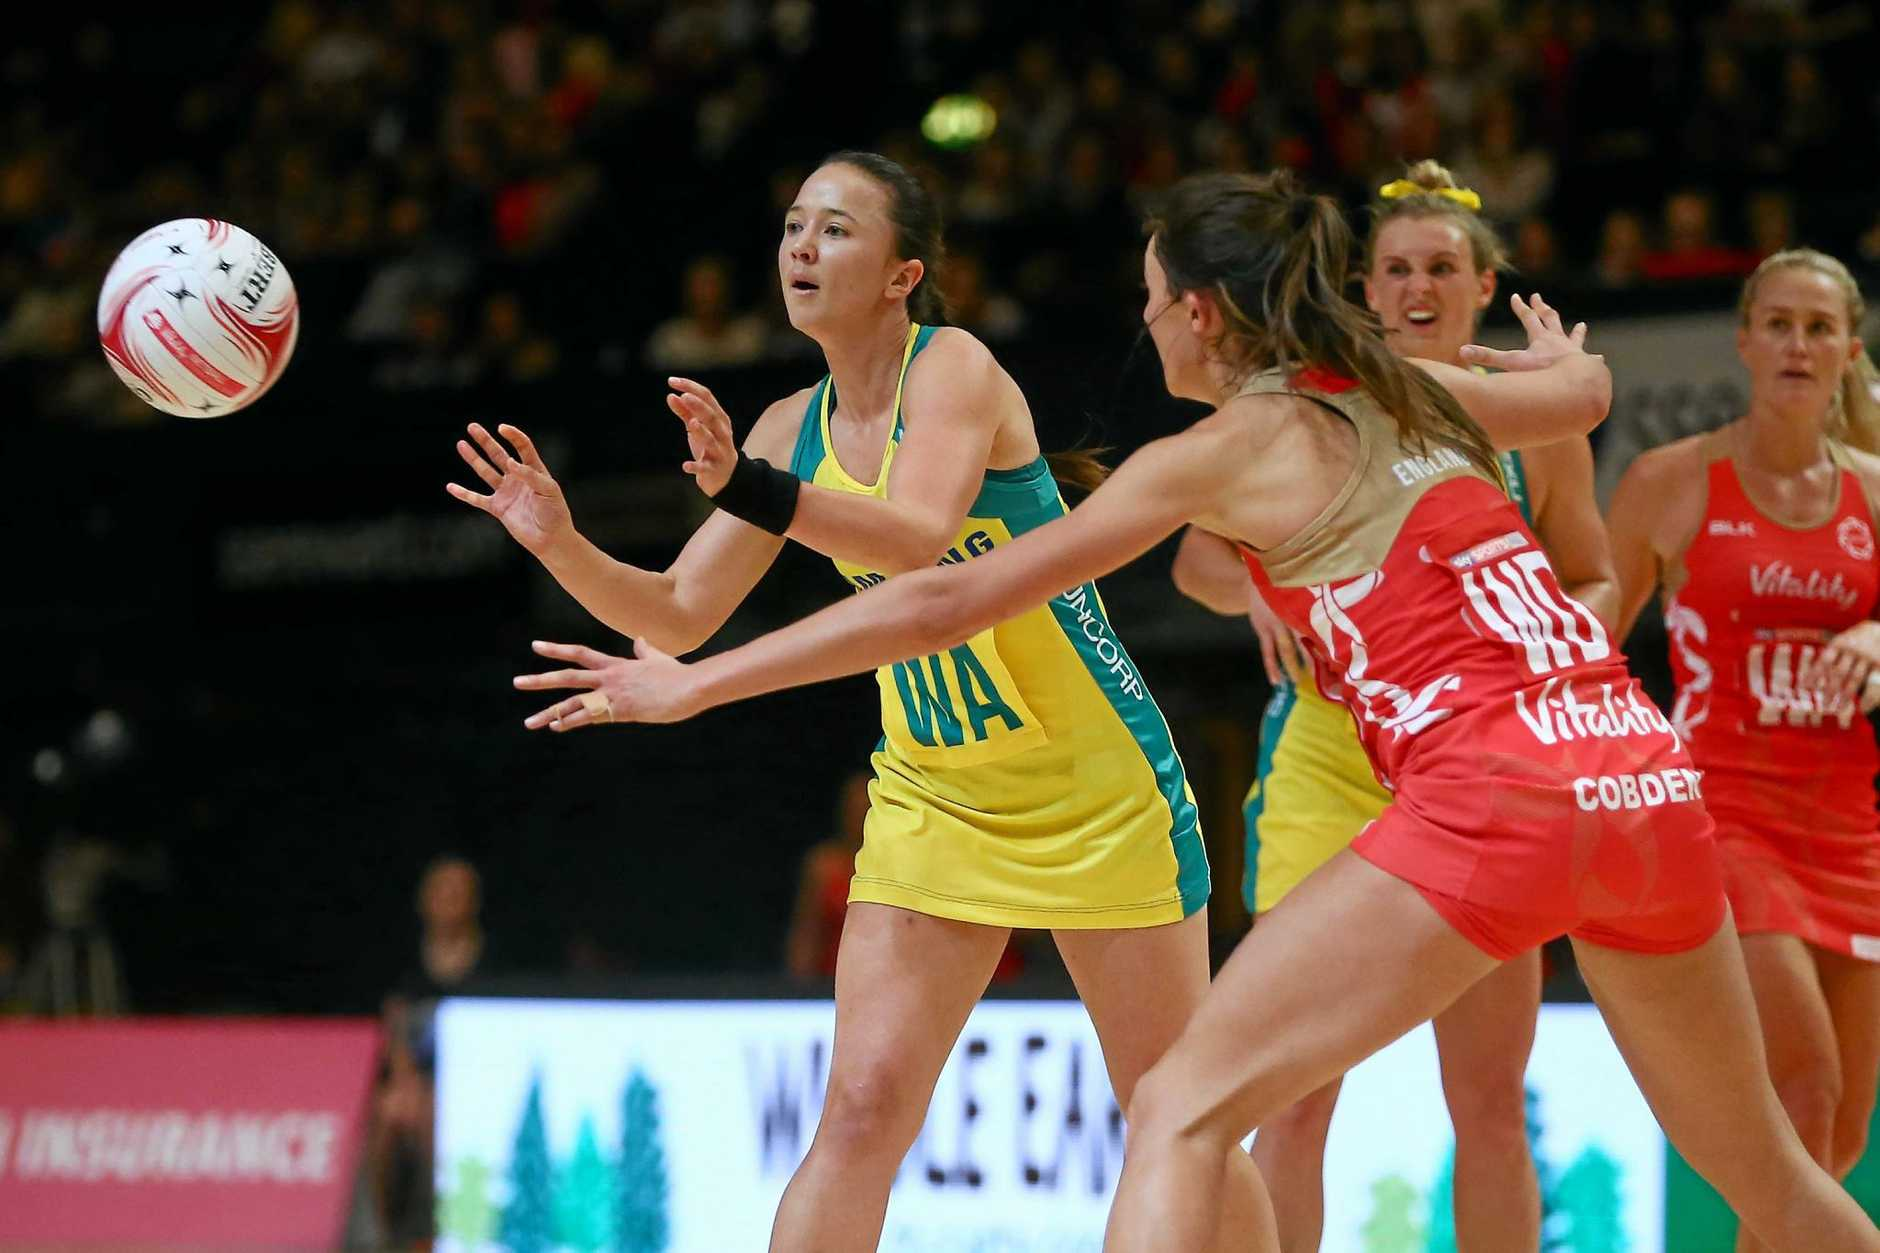 LONDON, ENGLAND - FEBRUARY 05:  Caitlyn Nevins of Australia passes past Beth Cobden of England during the Quad Series netball match between the England Roses and the Australia Diamonds at the SSE Arena on February 5, 2017 in London, England.  (Photo by Jordan Mansfield/Getty Images)